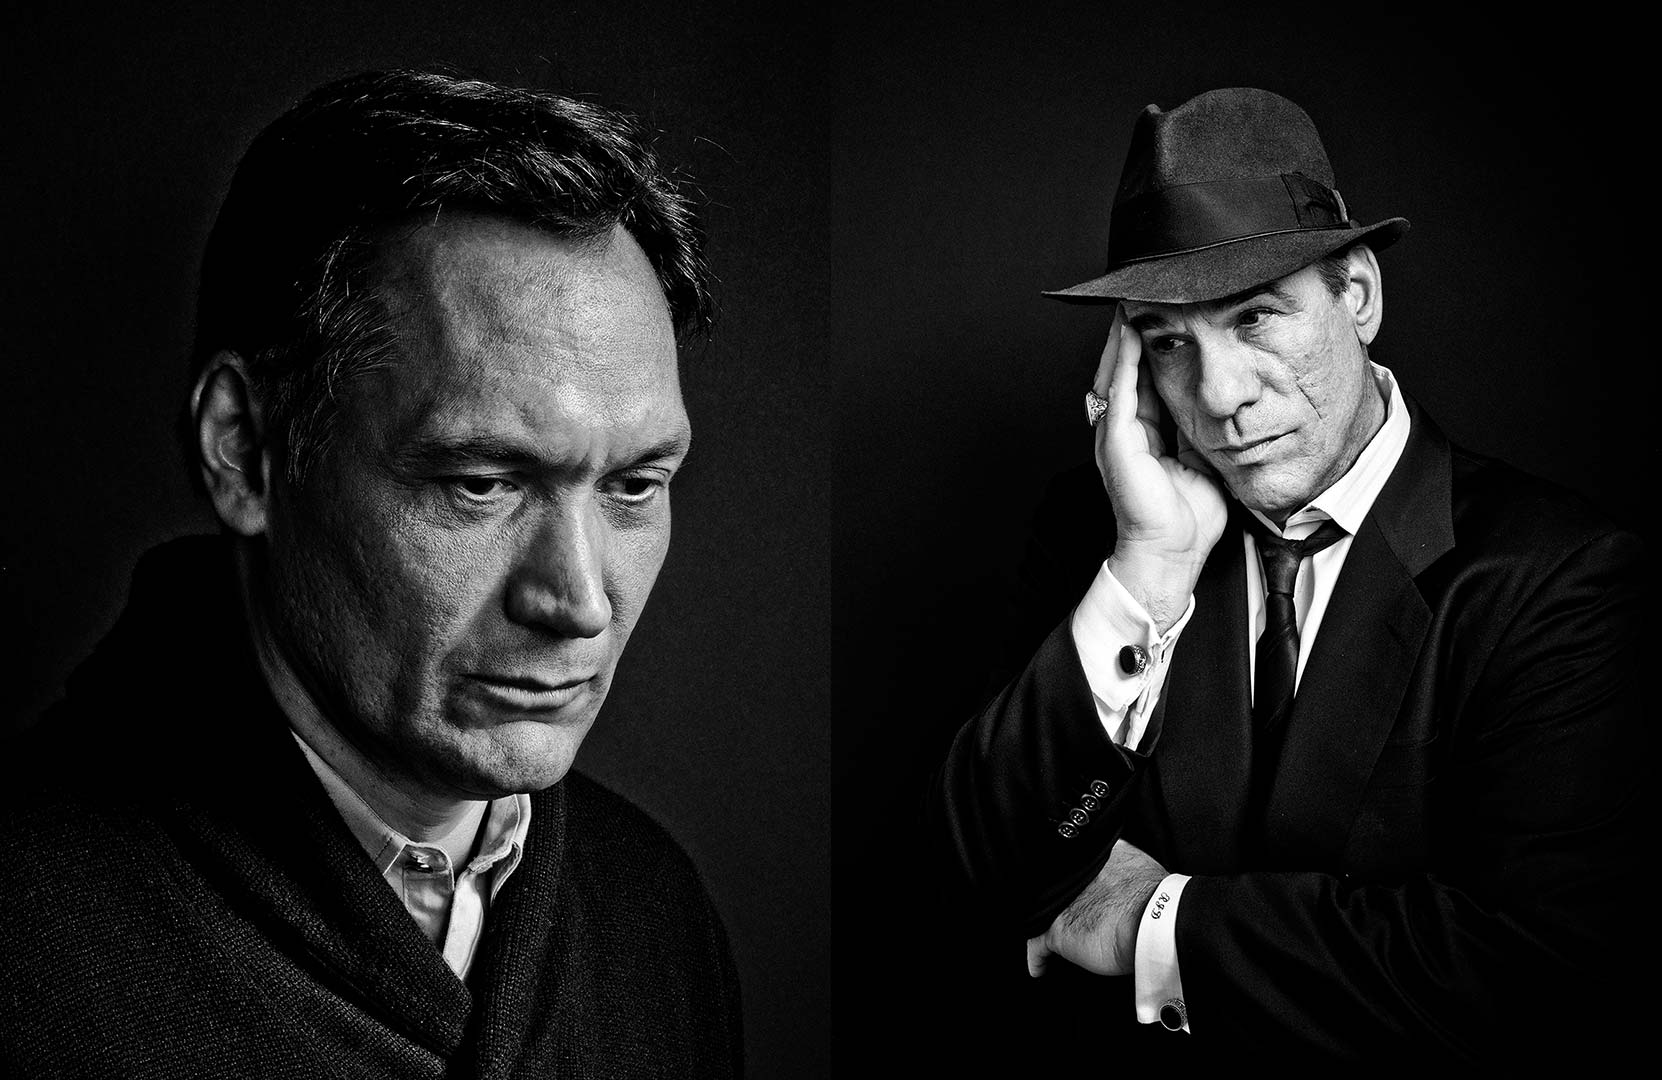 black & white portrait photography of actors Jimmy Smits and Robert Davi